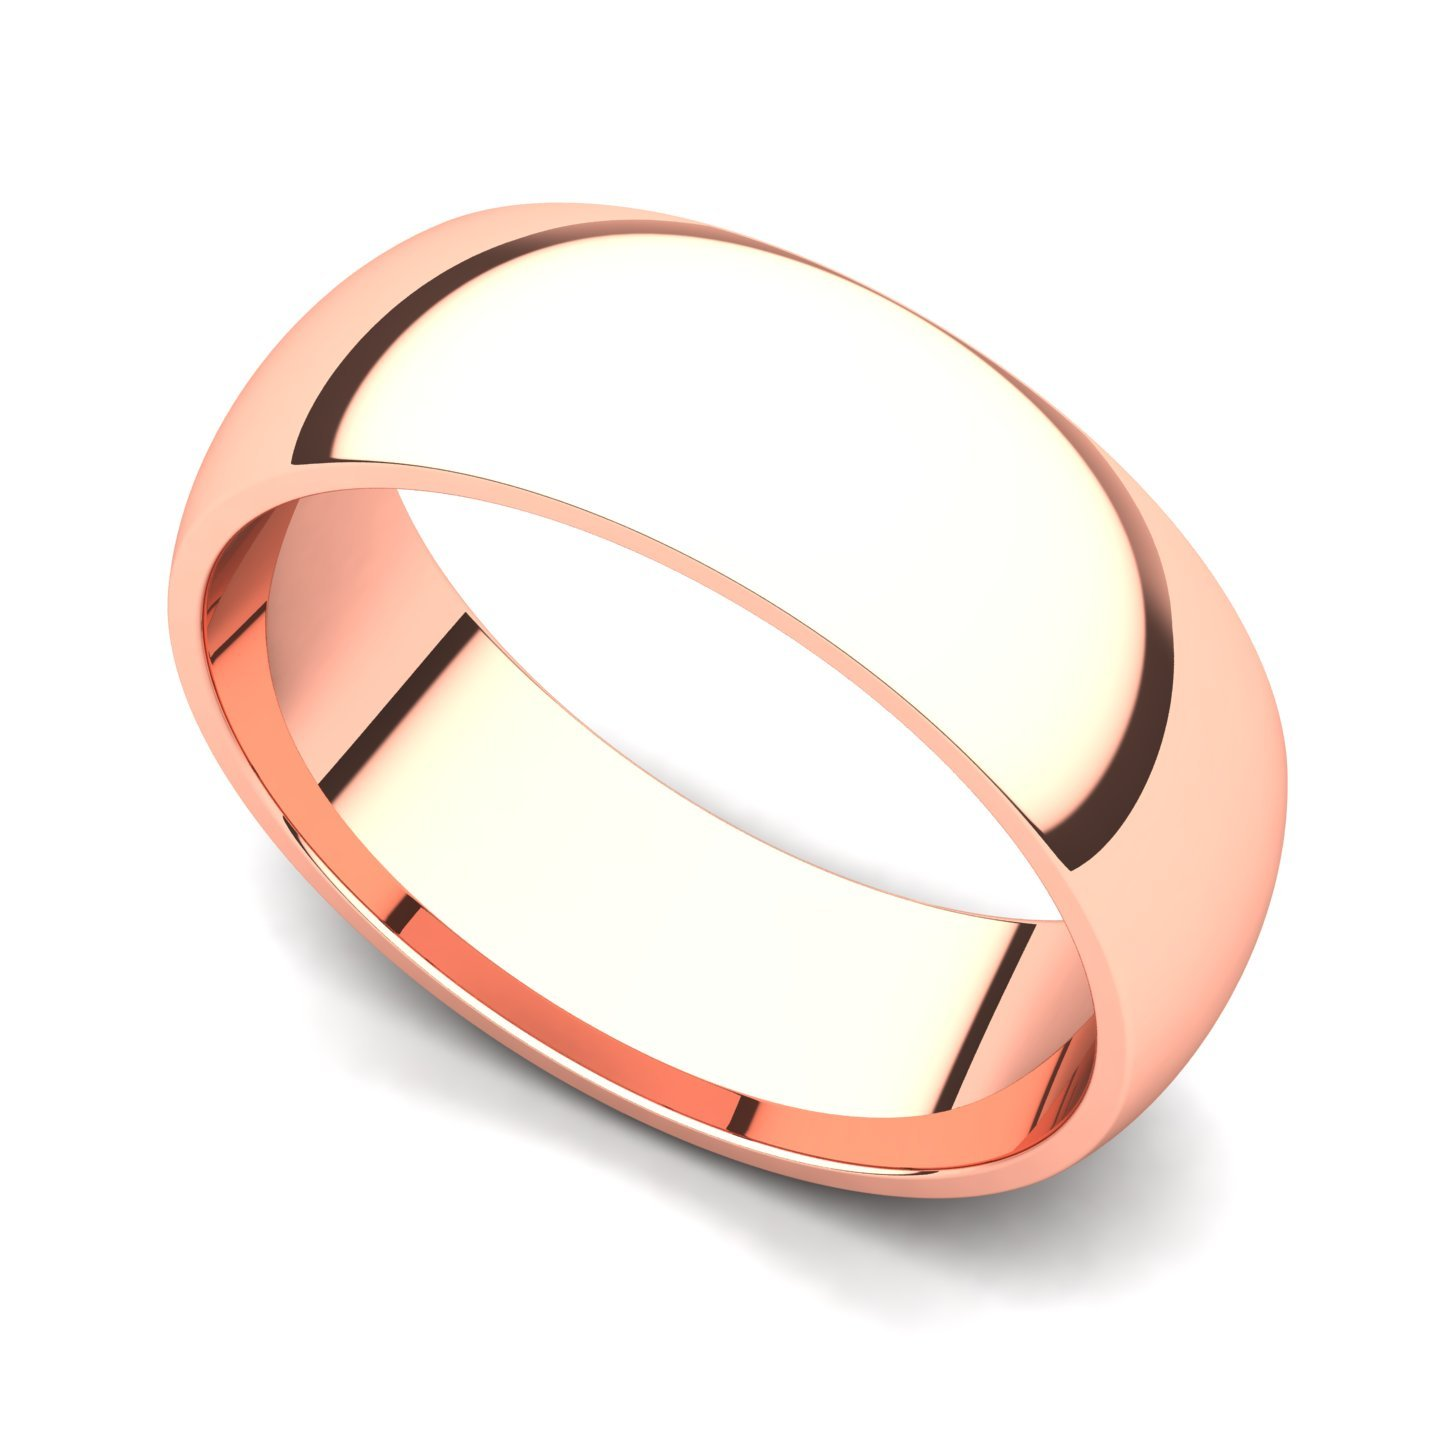 18k Rose Gold 6mm Classic Plain Comfort Fit Wedding Band Ring, 11 by Juno Jewelry